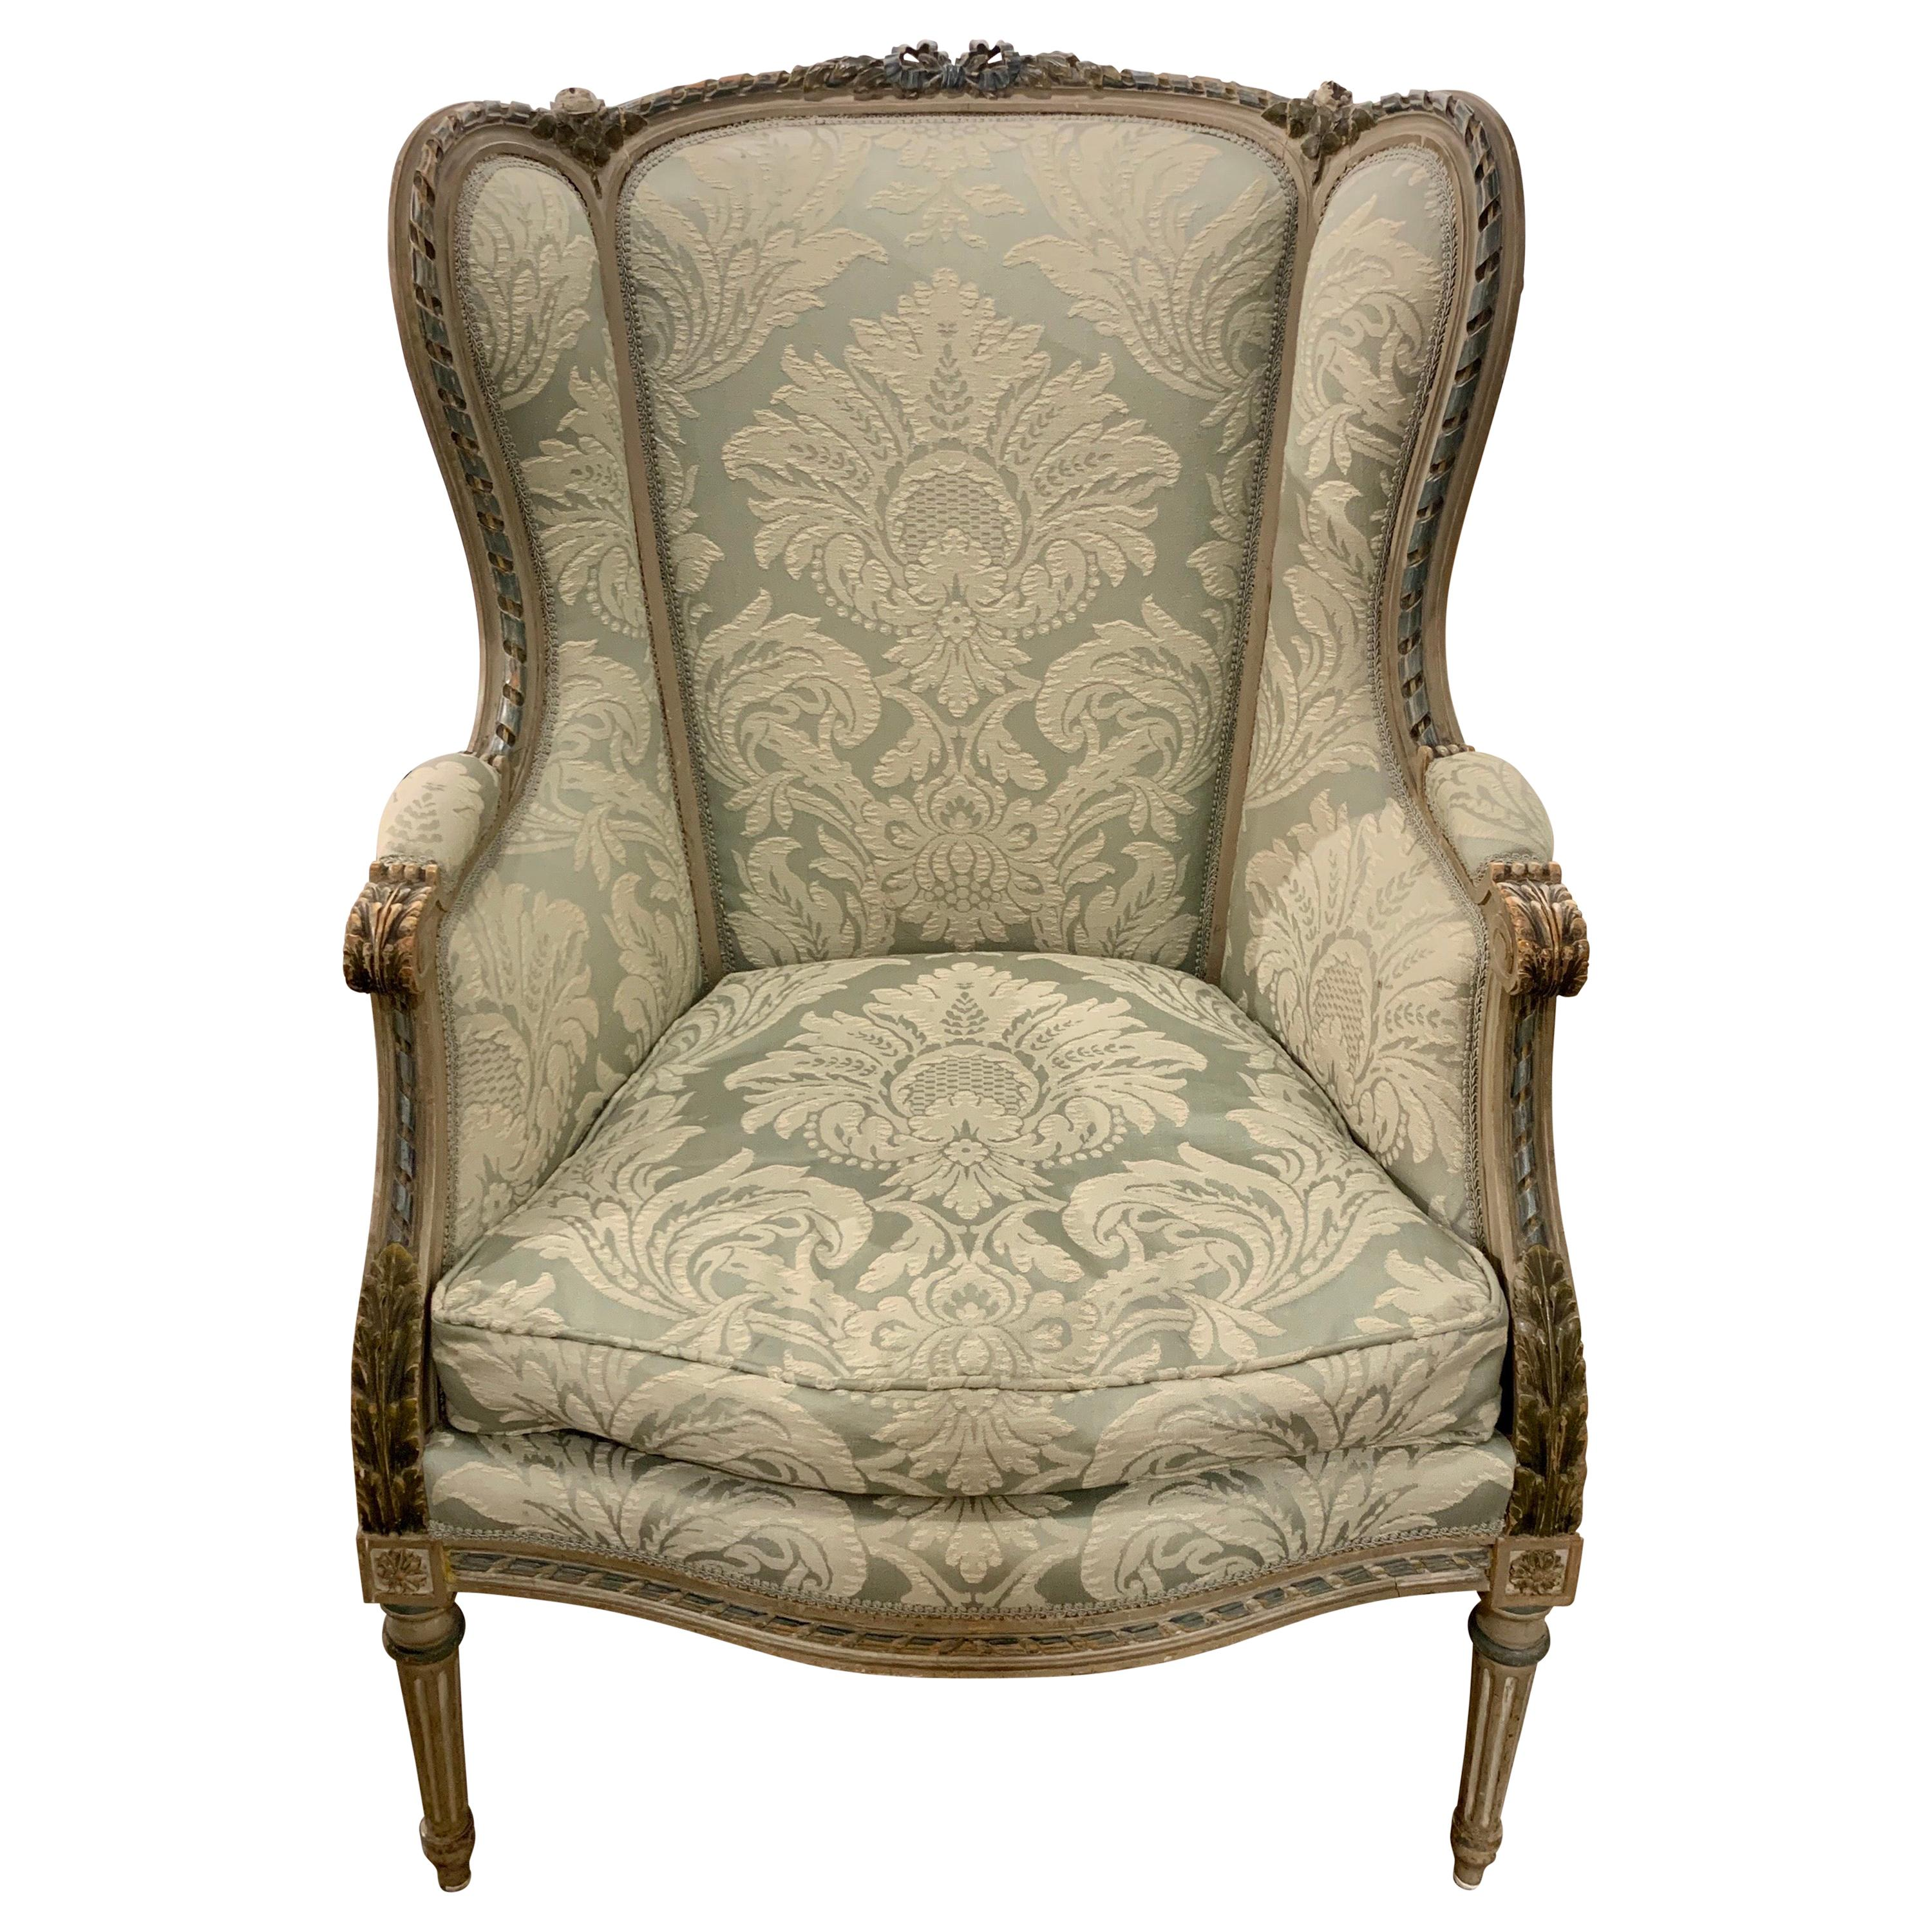 19th Century French Louis XVI Style Carved Bergère